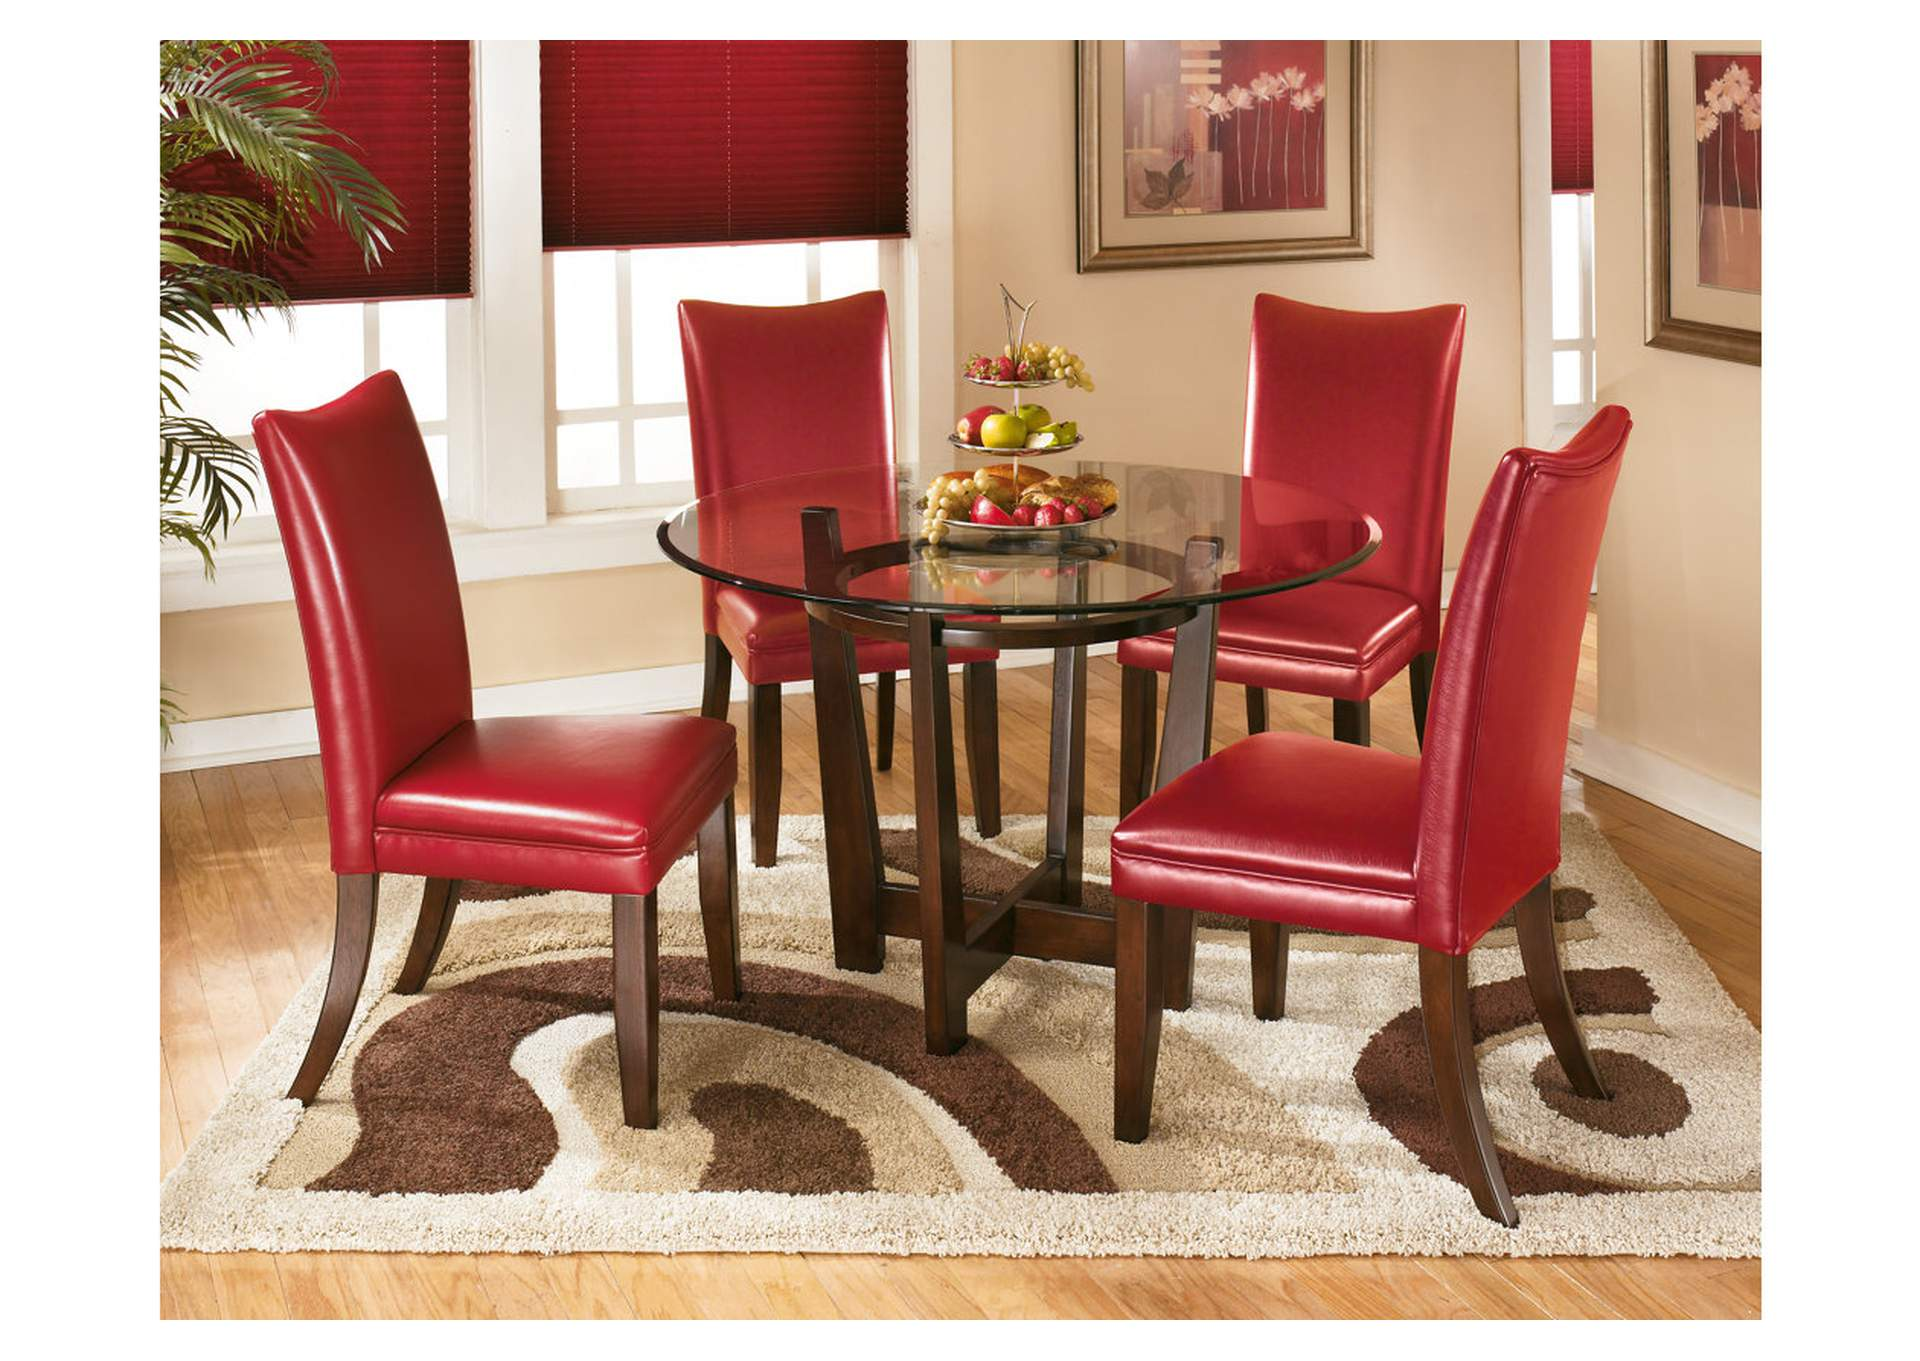 Charell Round Dining Table w/4 Red Side Chairs,Signature Design By Ashley